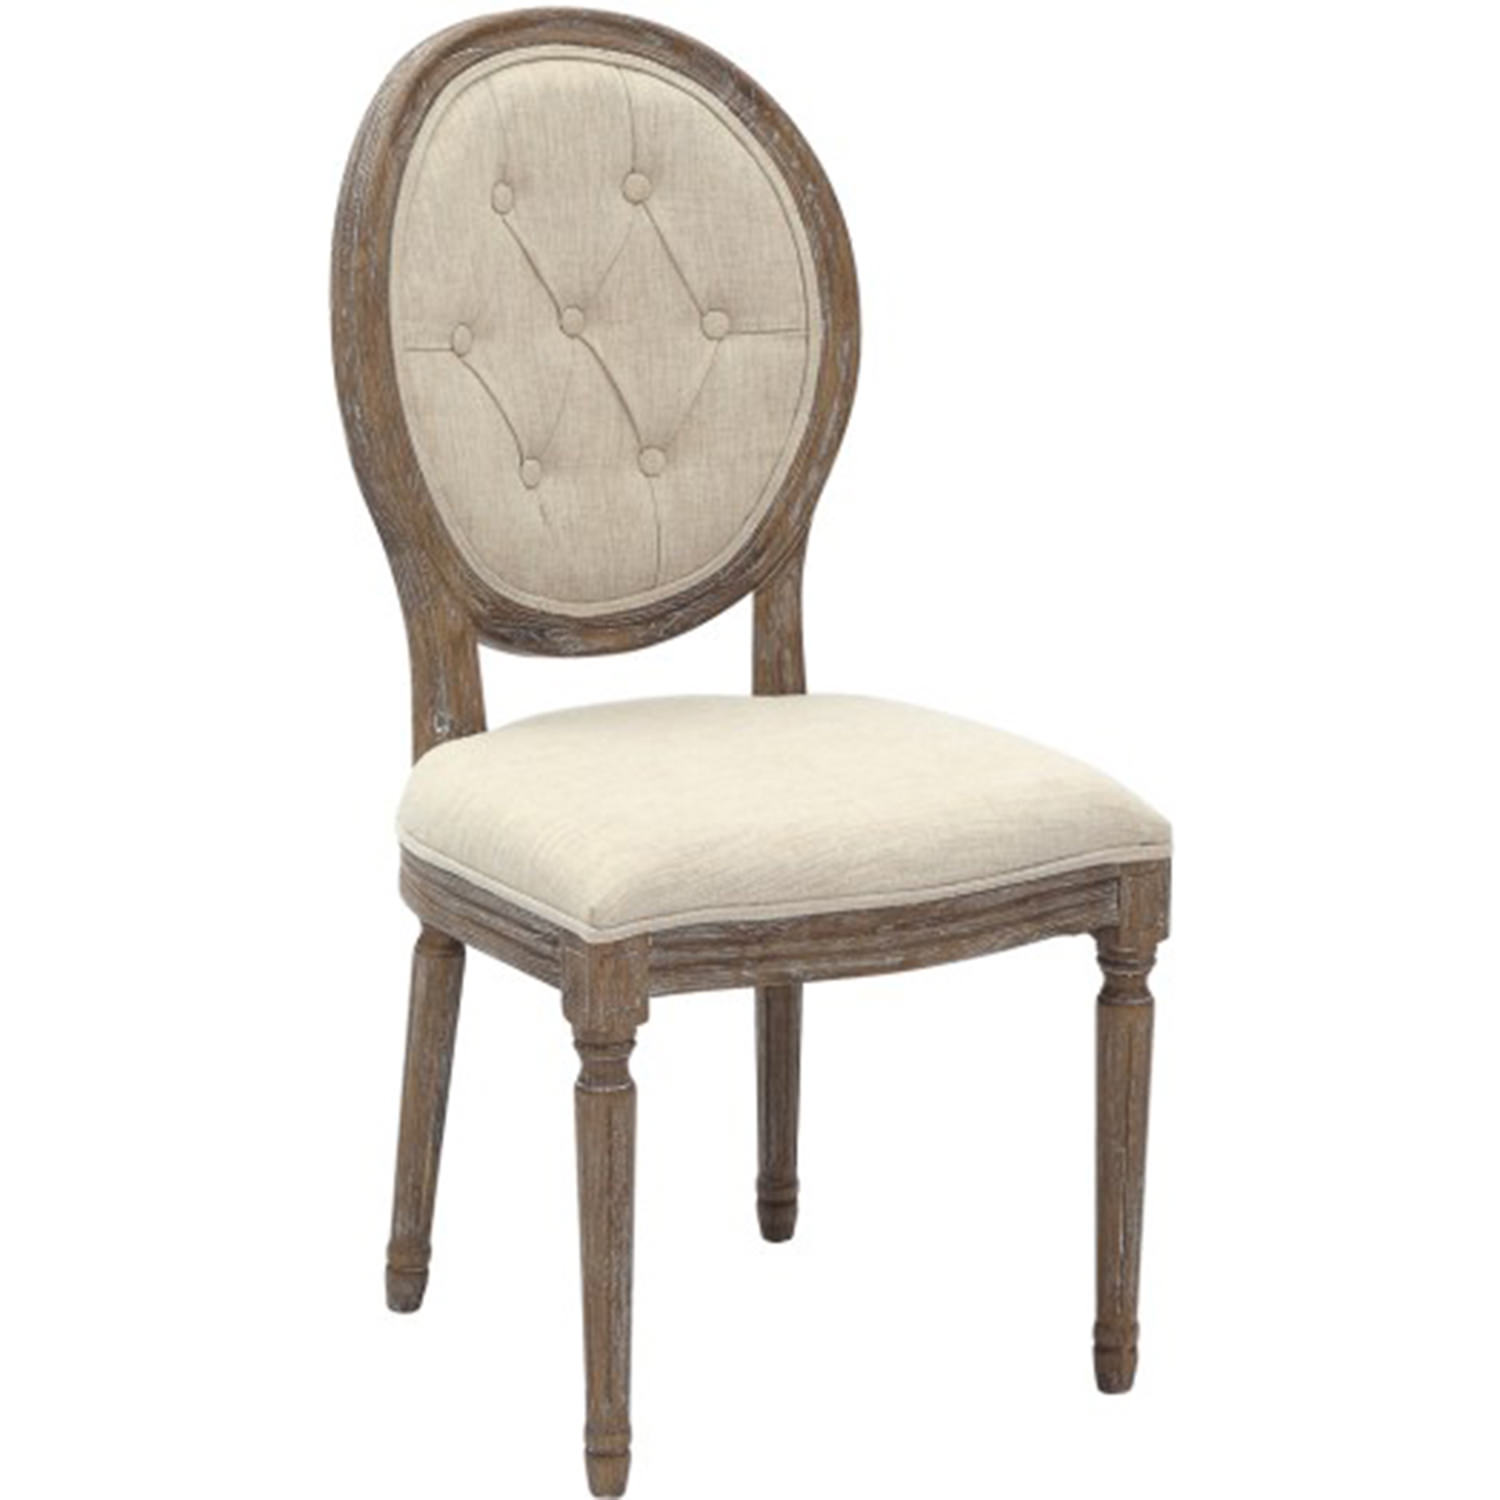 2xhome Cream Color Upholstered Button Tufted Back Fabric Ghost Chair Dining Chair Modern Side Chair Solid Wood Legs